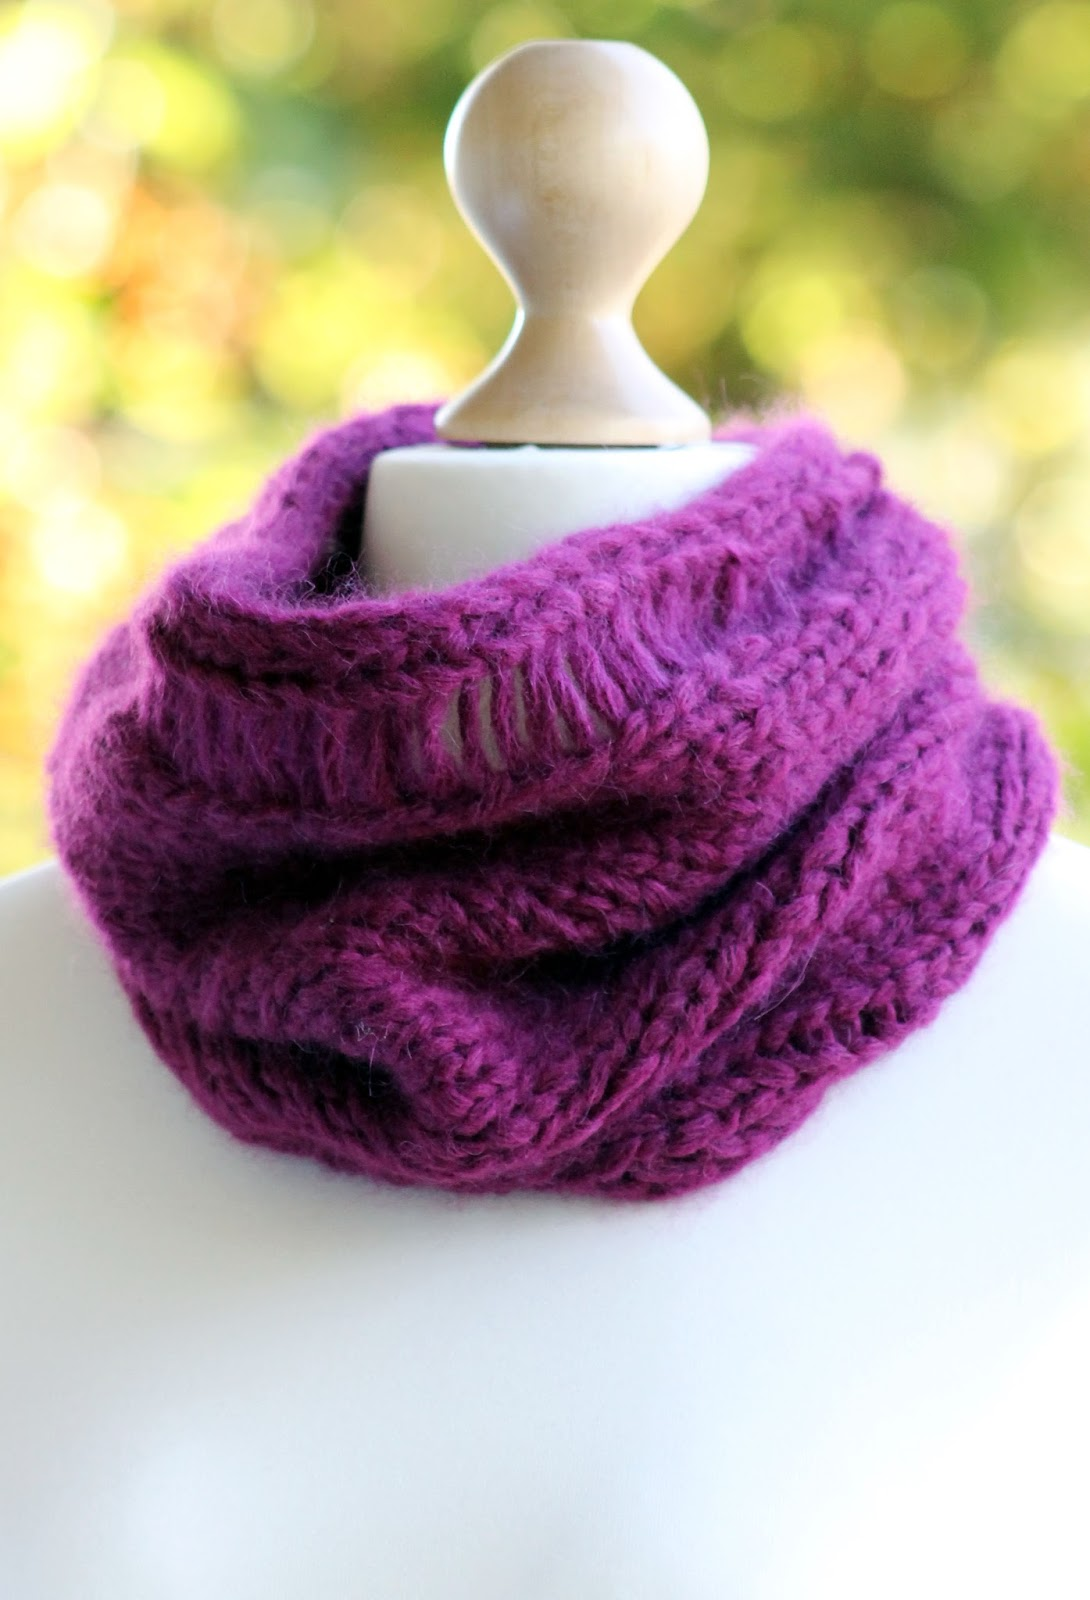 Balls to the Walls Knits: Magentalicious Cowl